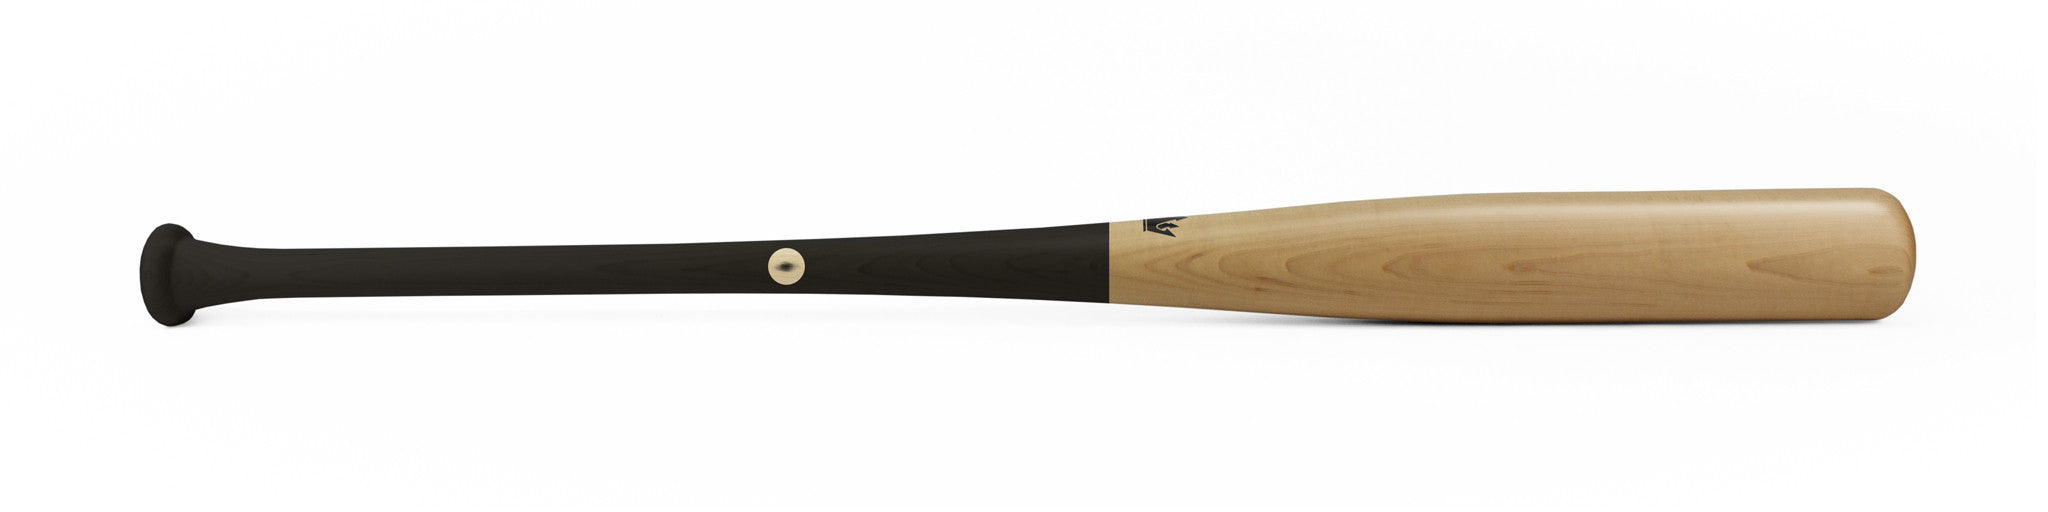 Wood bat - Birch model 243-P Black Dip - 17